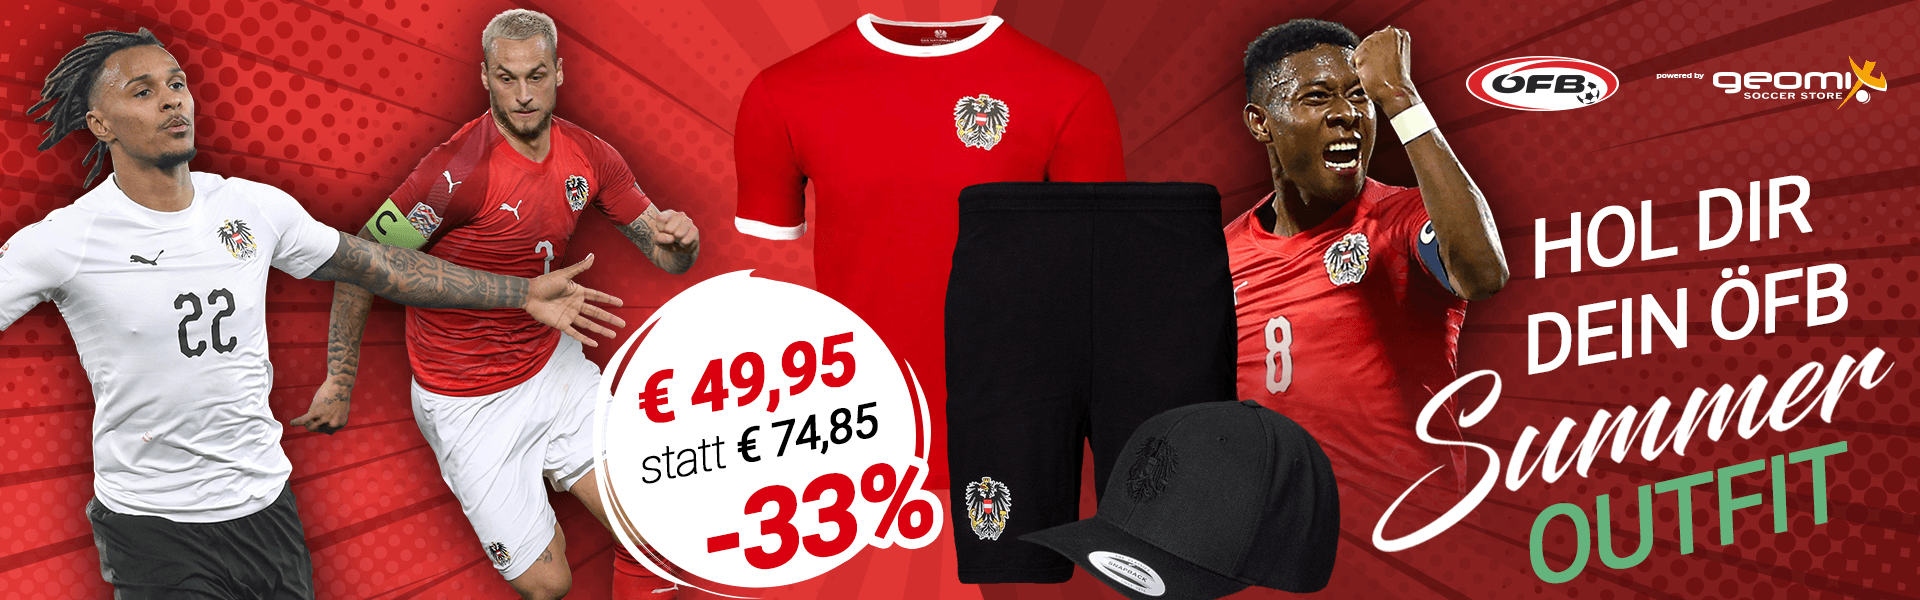 ÖFB Startseite Sommer Outfit